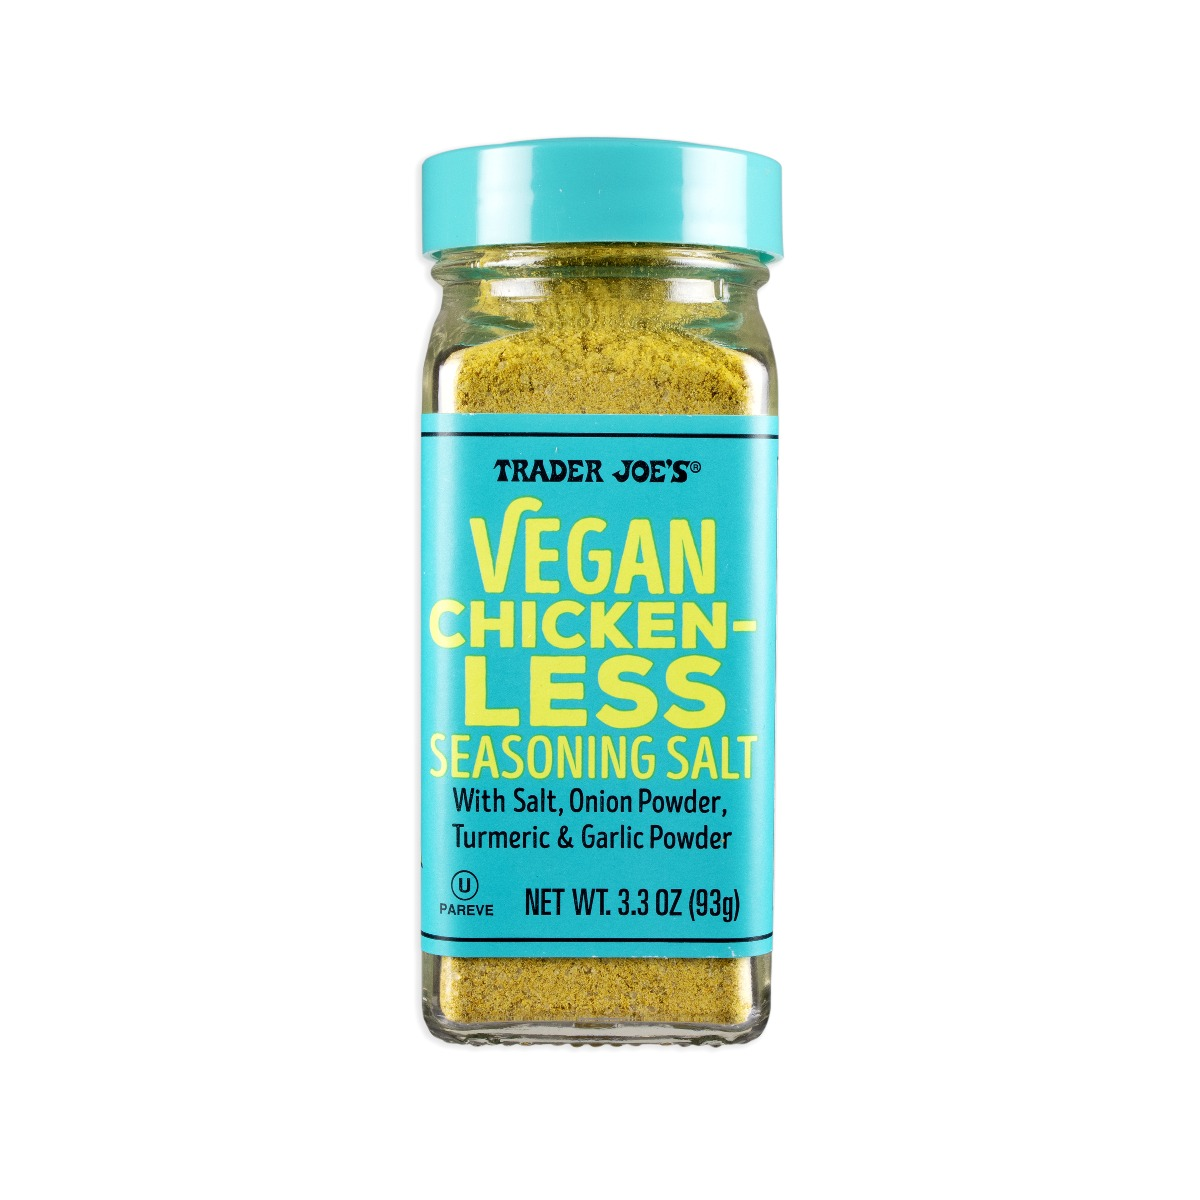 Trader Joe's Vegan Chicken-Less Seasoning Salt..